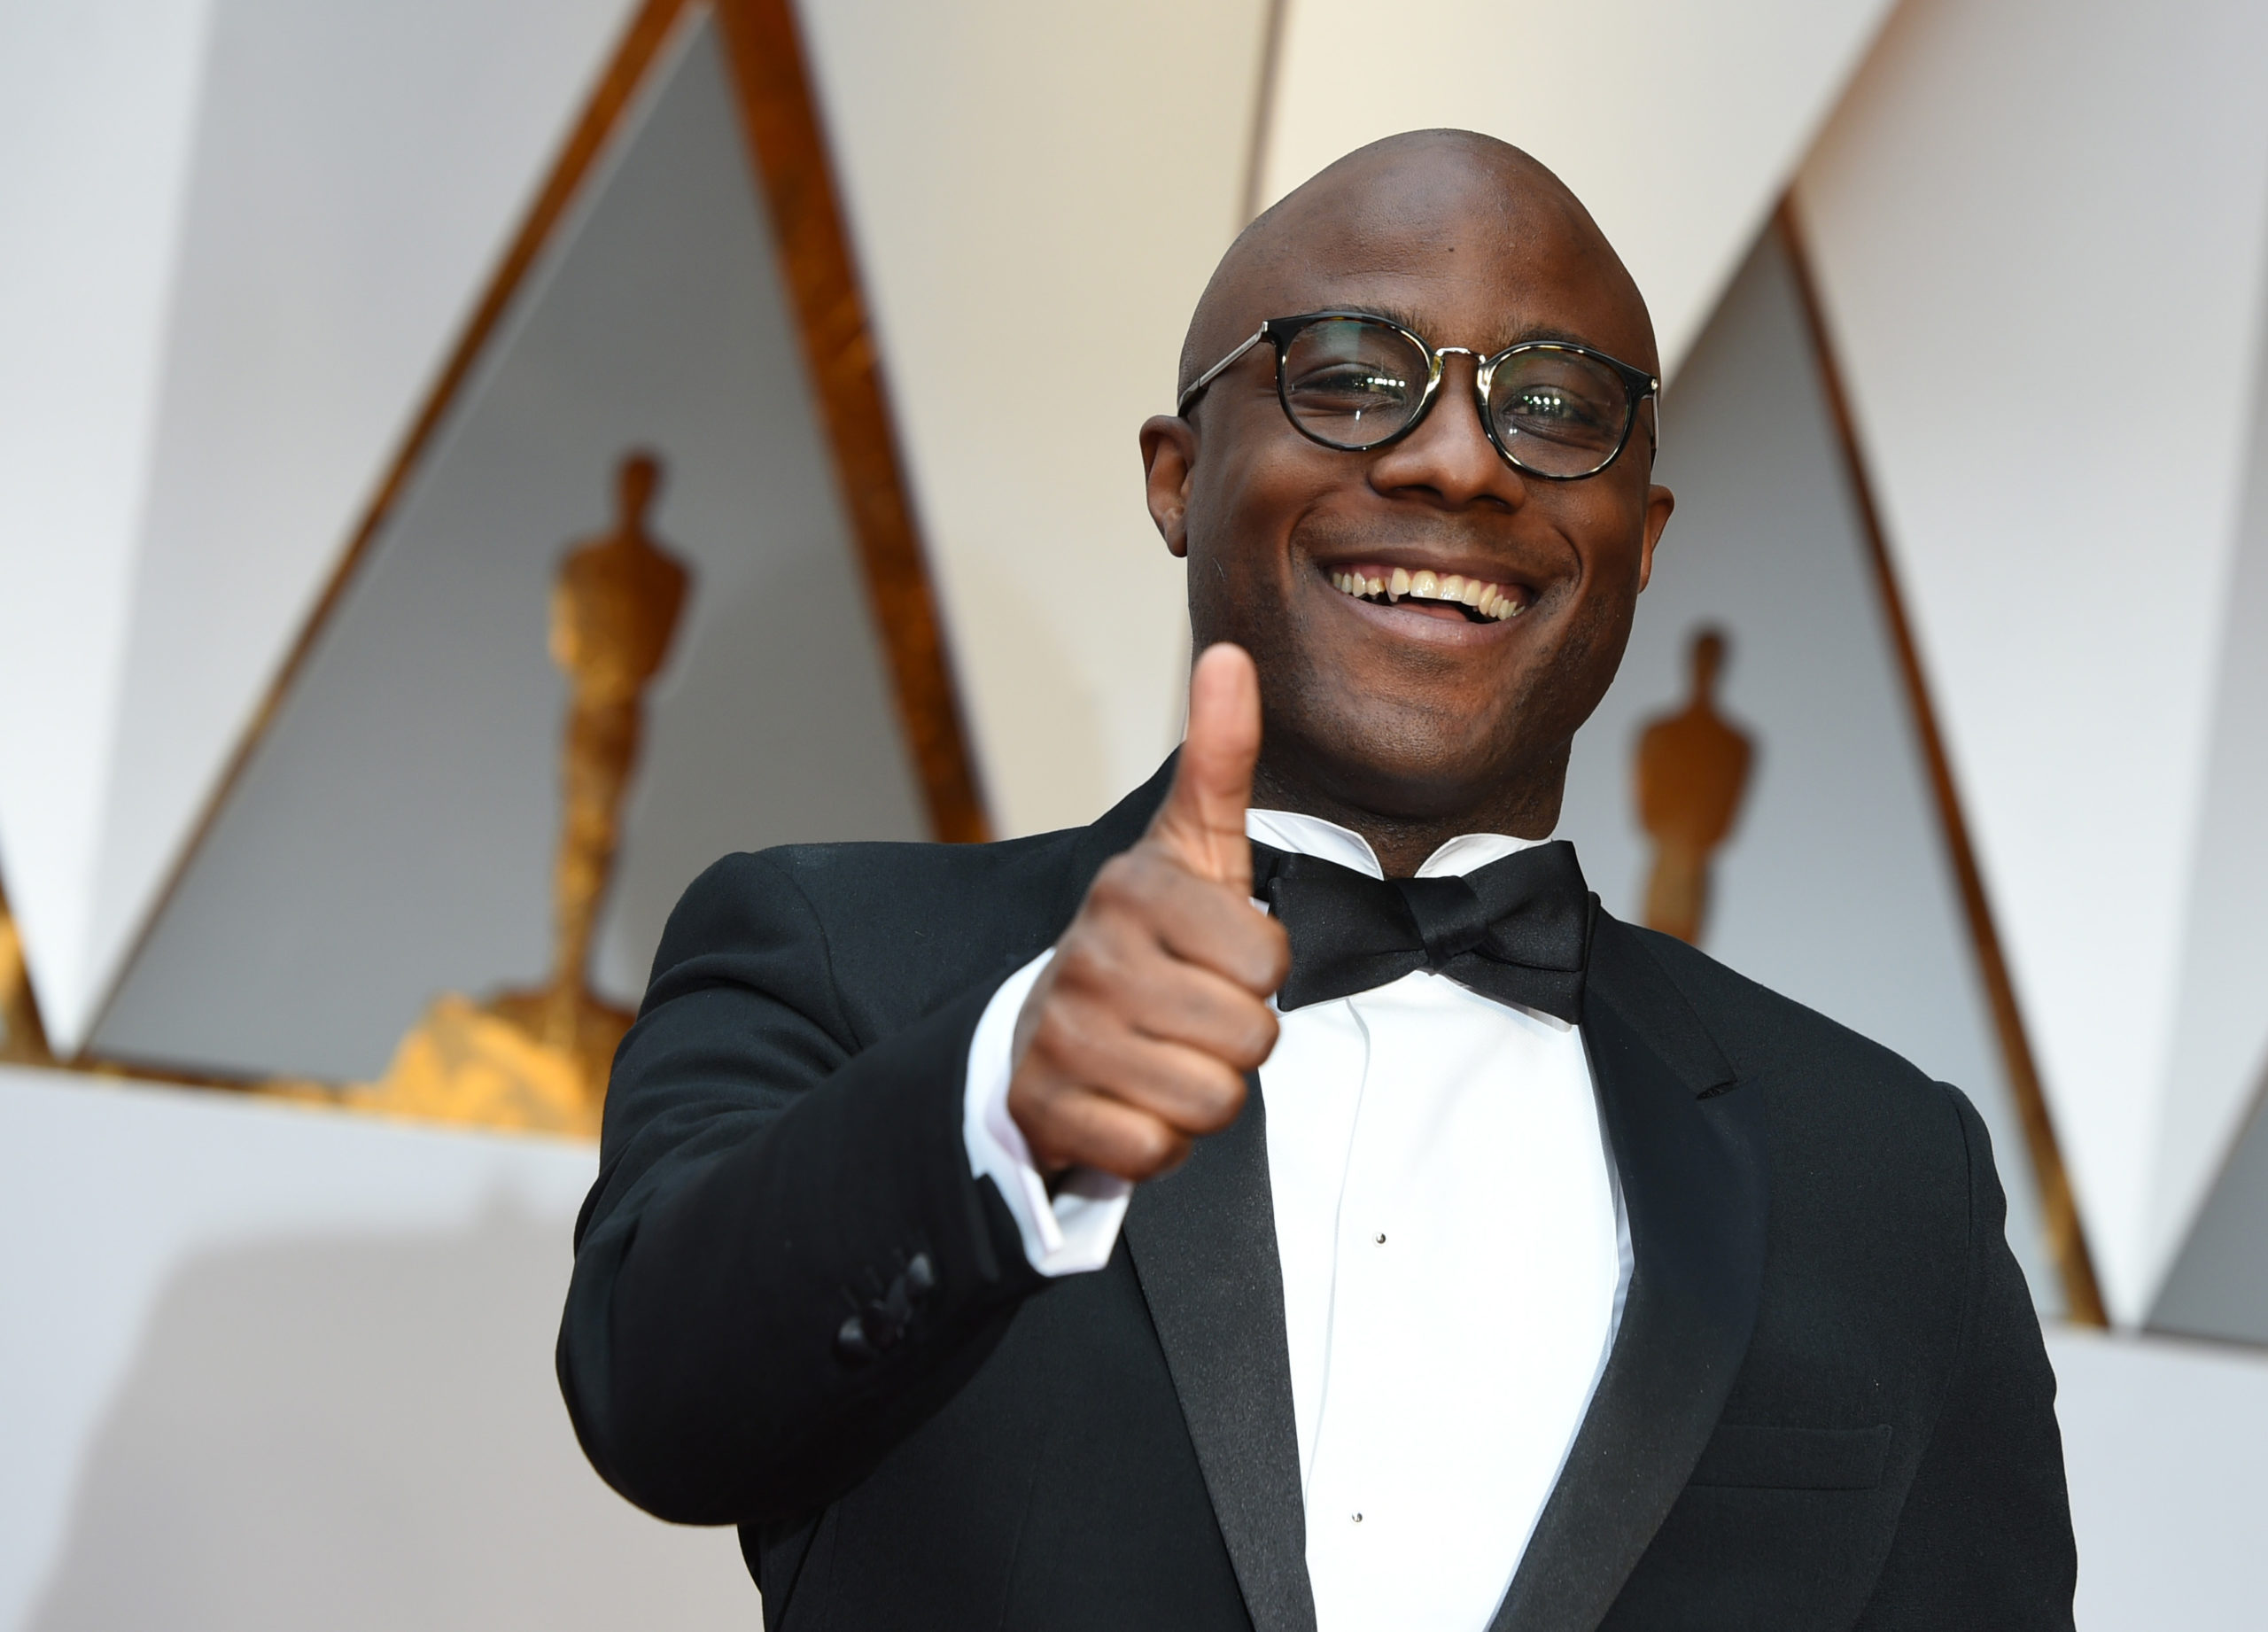 Moonlight director Barry Jenkins has been hired by Disney